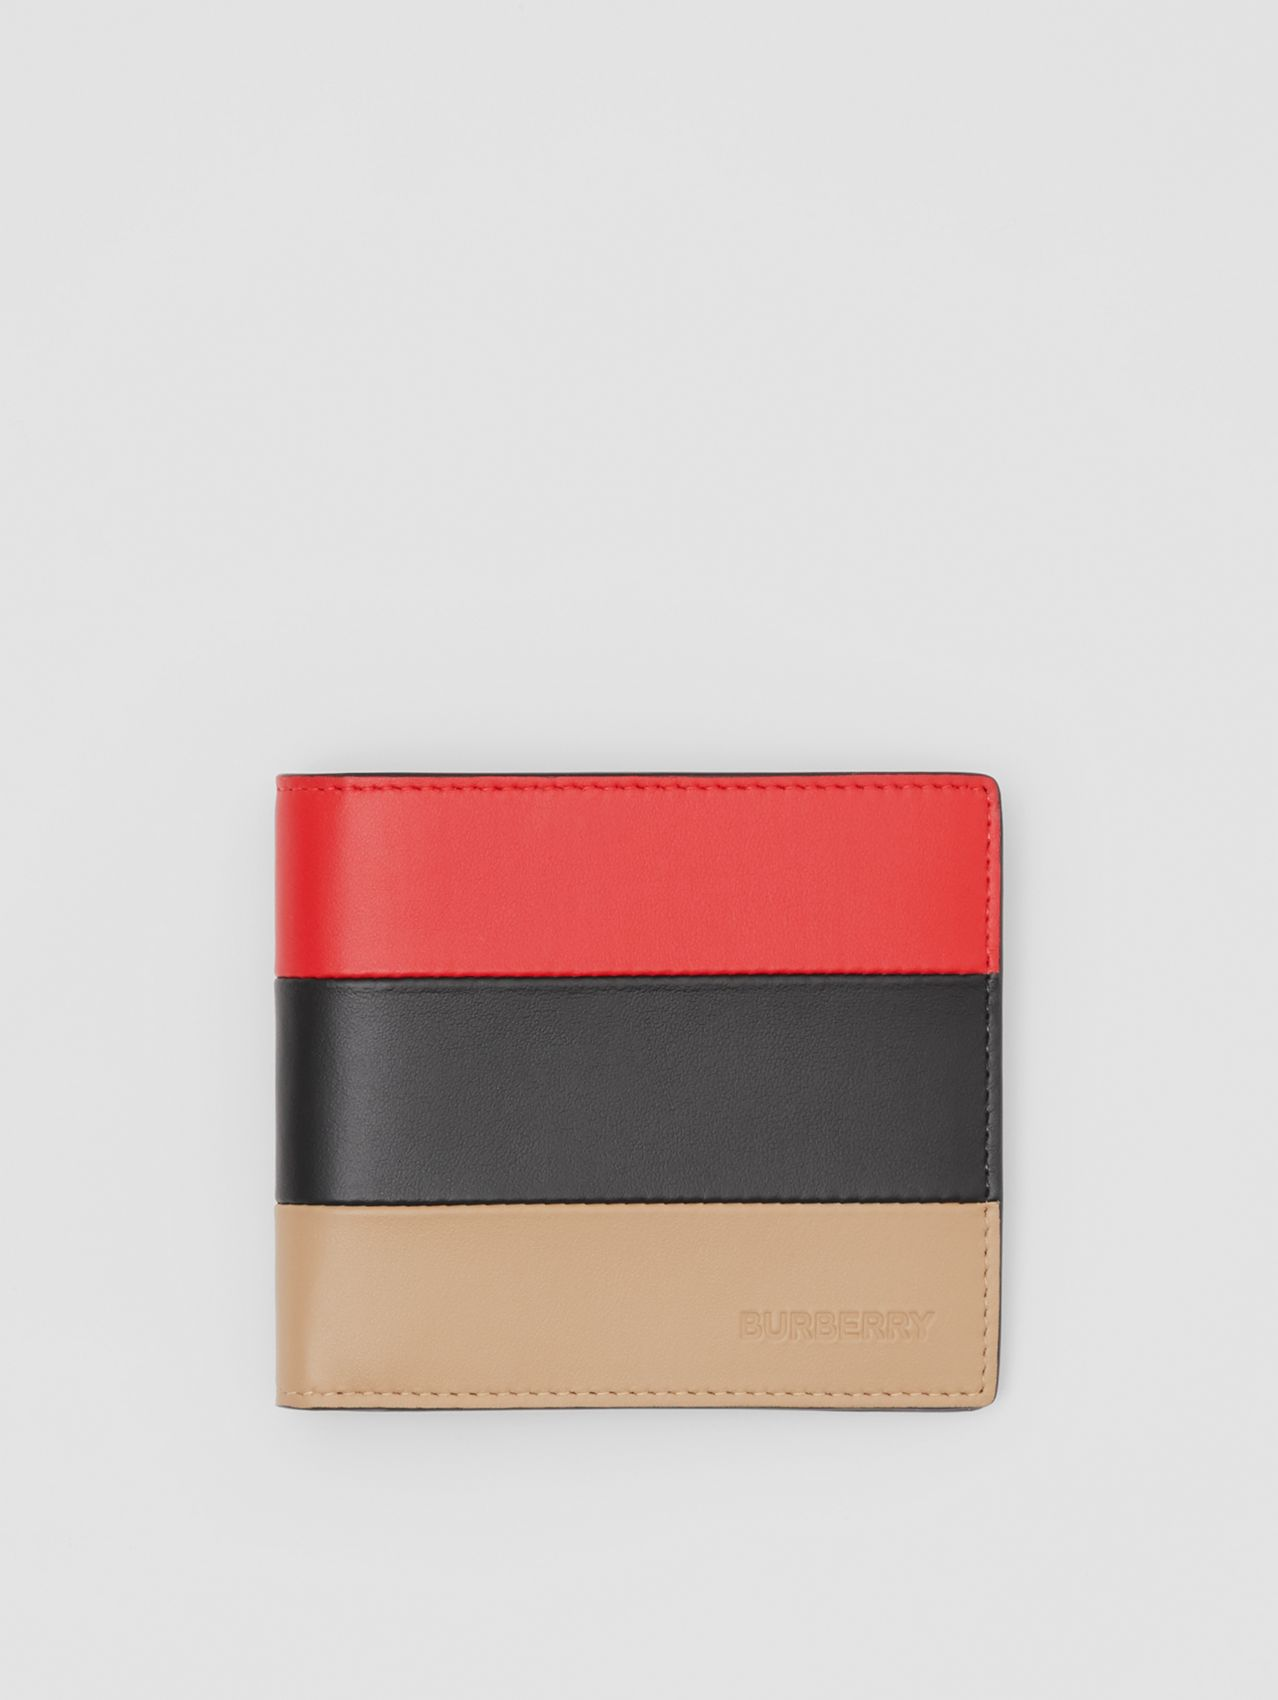 Colour Block Leather International Bifold Wallet in Red/black/beige